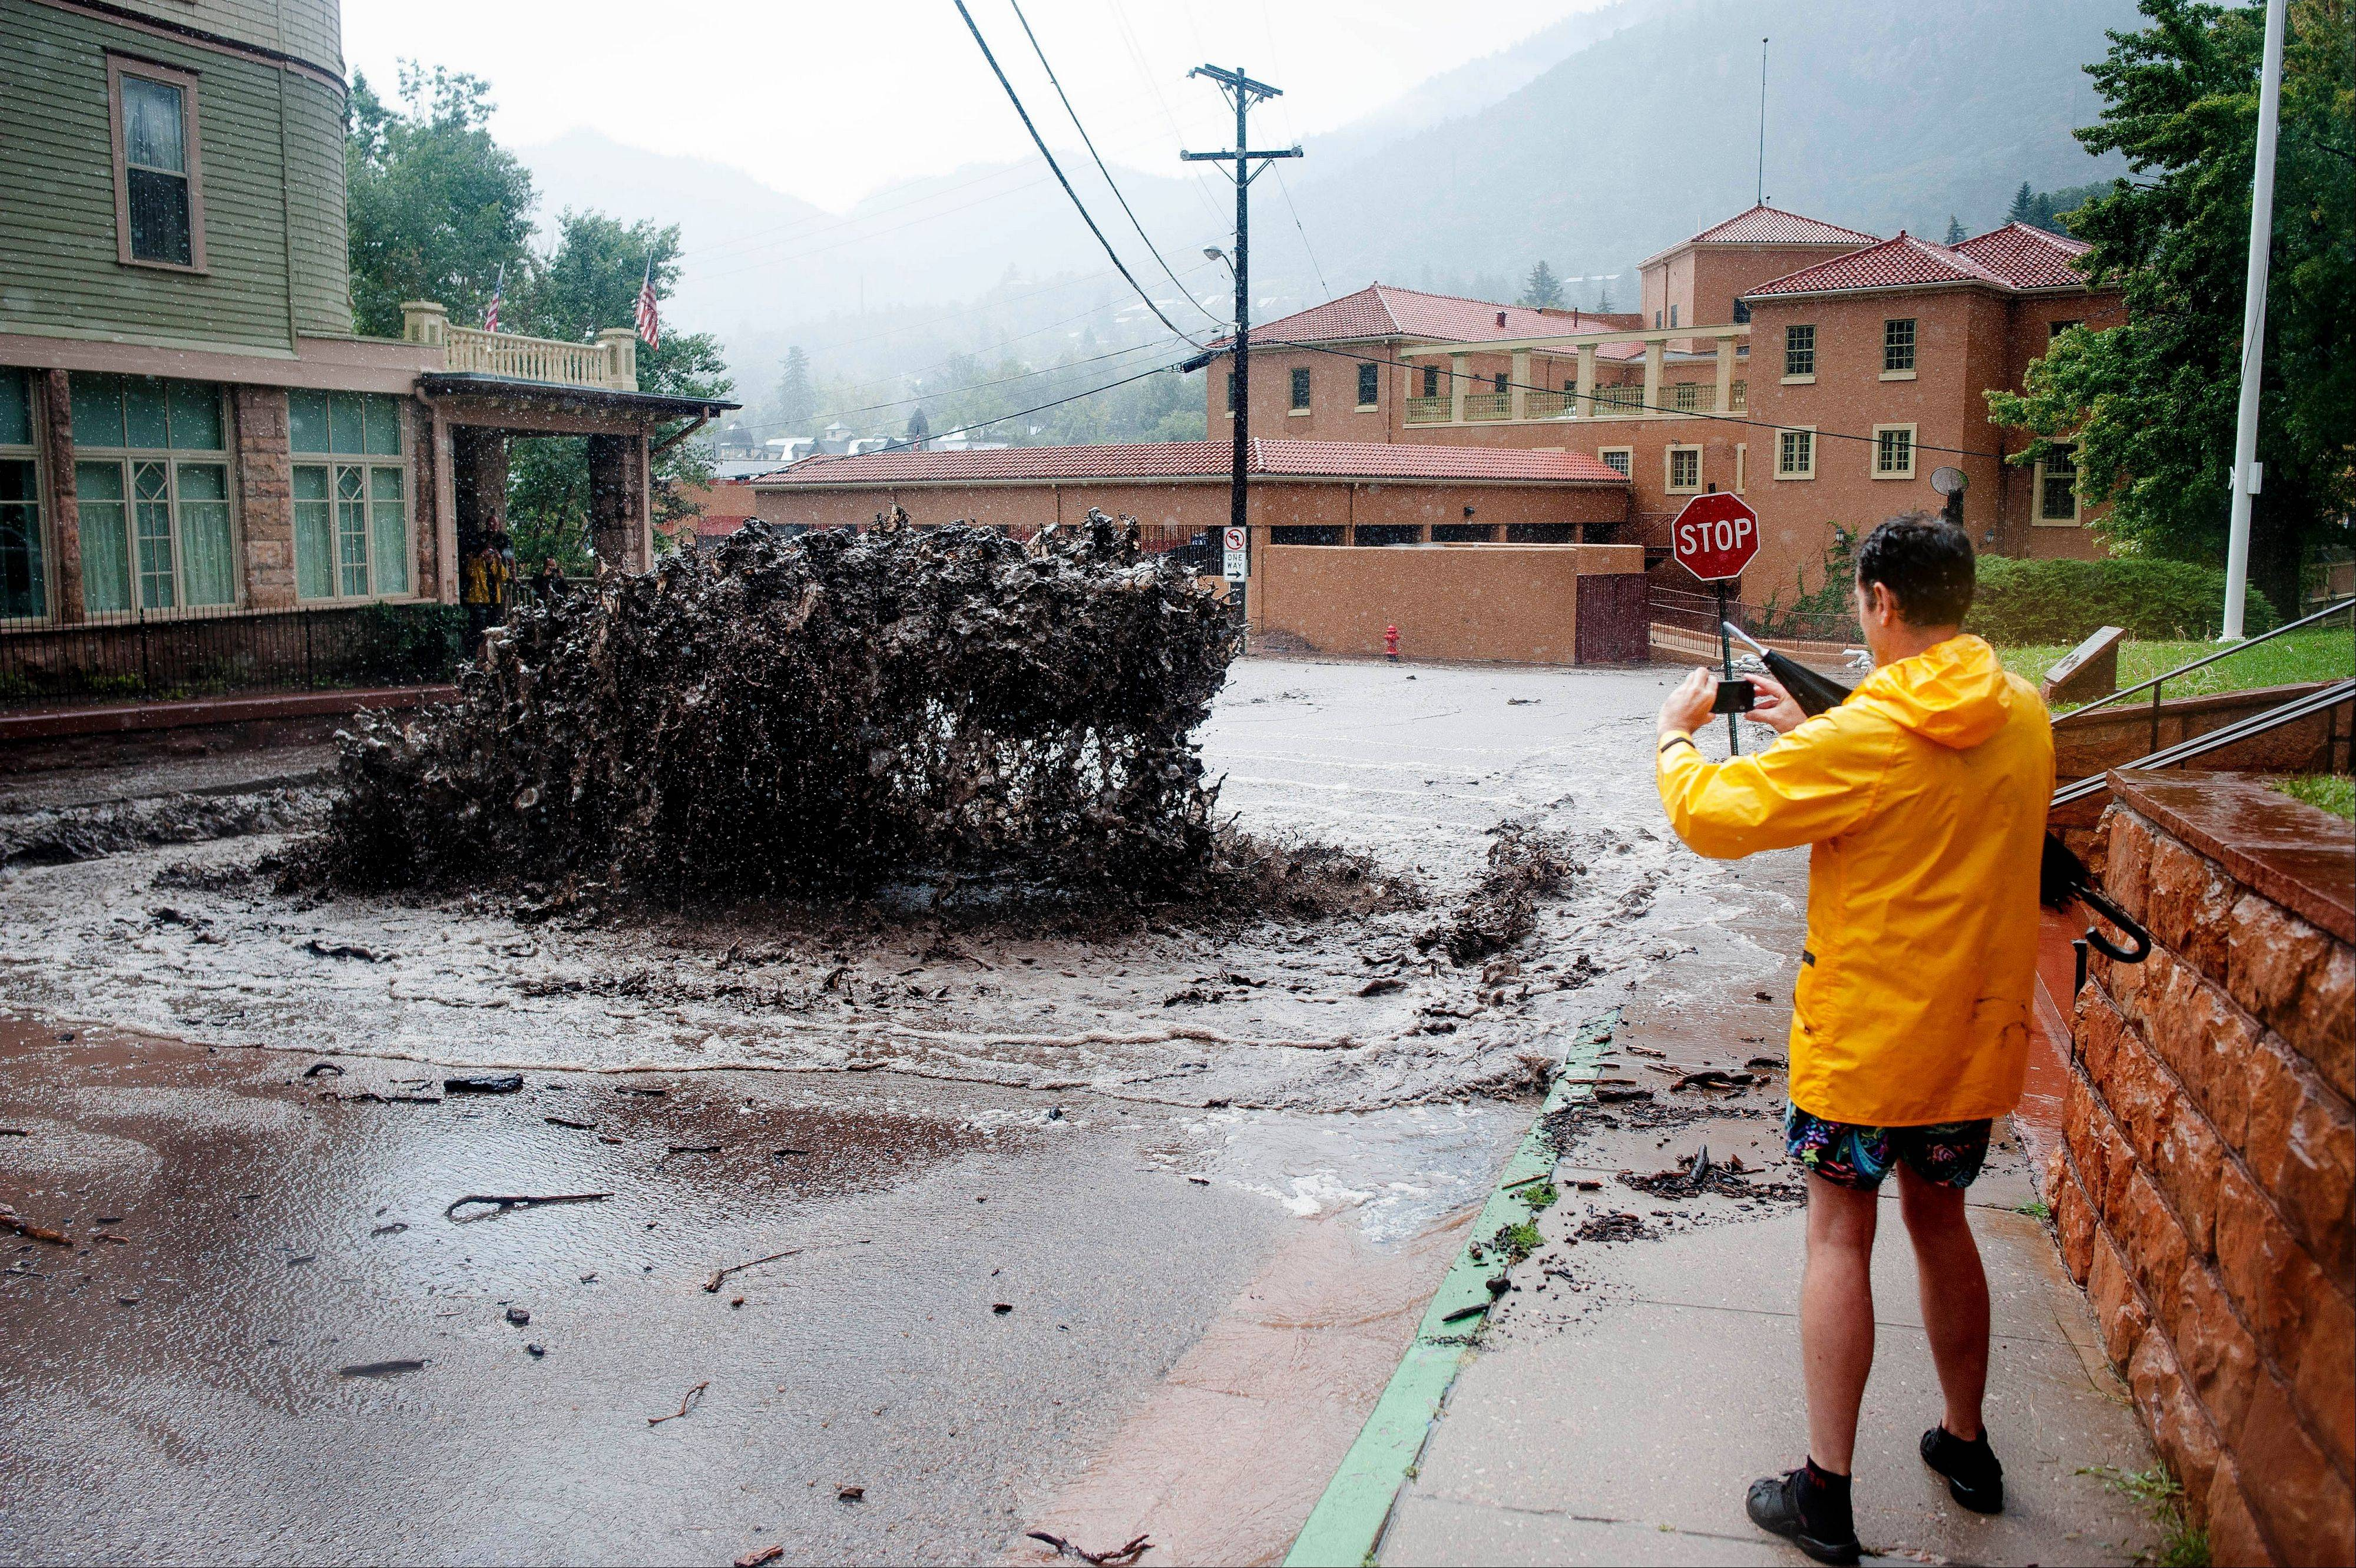 John Shada, of Manitou Springs, Colo., takes a photo of flood water as it shoots out of a sewer on Canon Avenue on Thursday, Sept. 12, 2013, in Manitou Springs, Colo. Flash flooding in Colorado has cut off access to towns, closed the University of Colorado in Boulder and left at least three people dead.